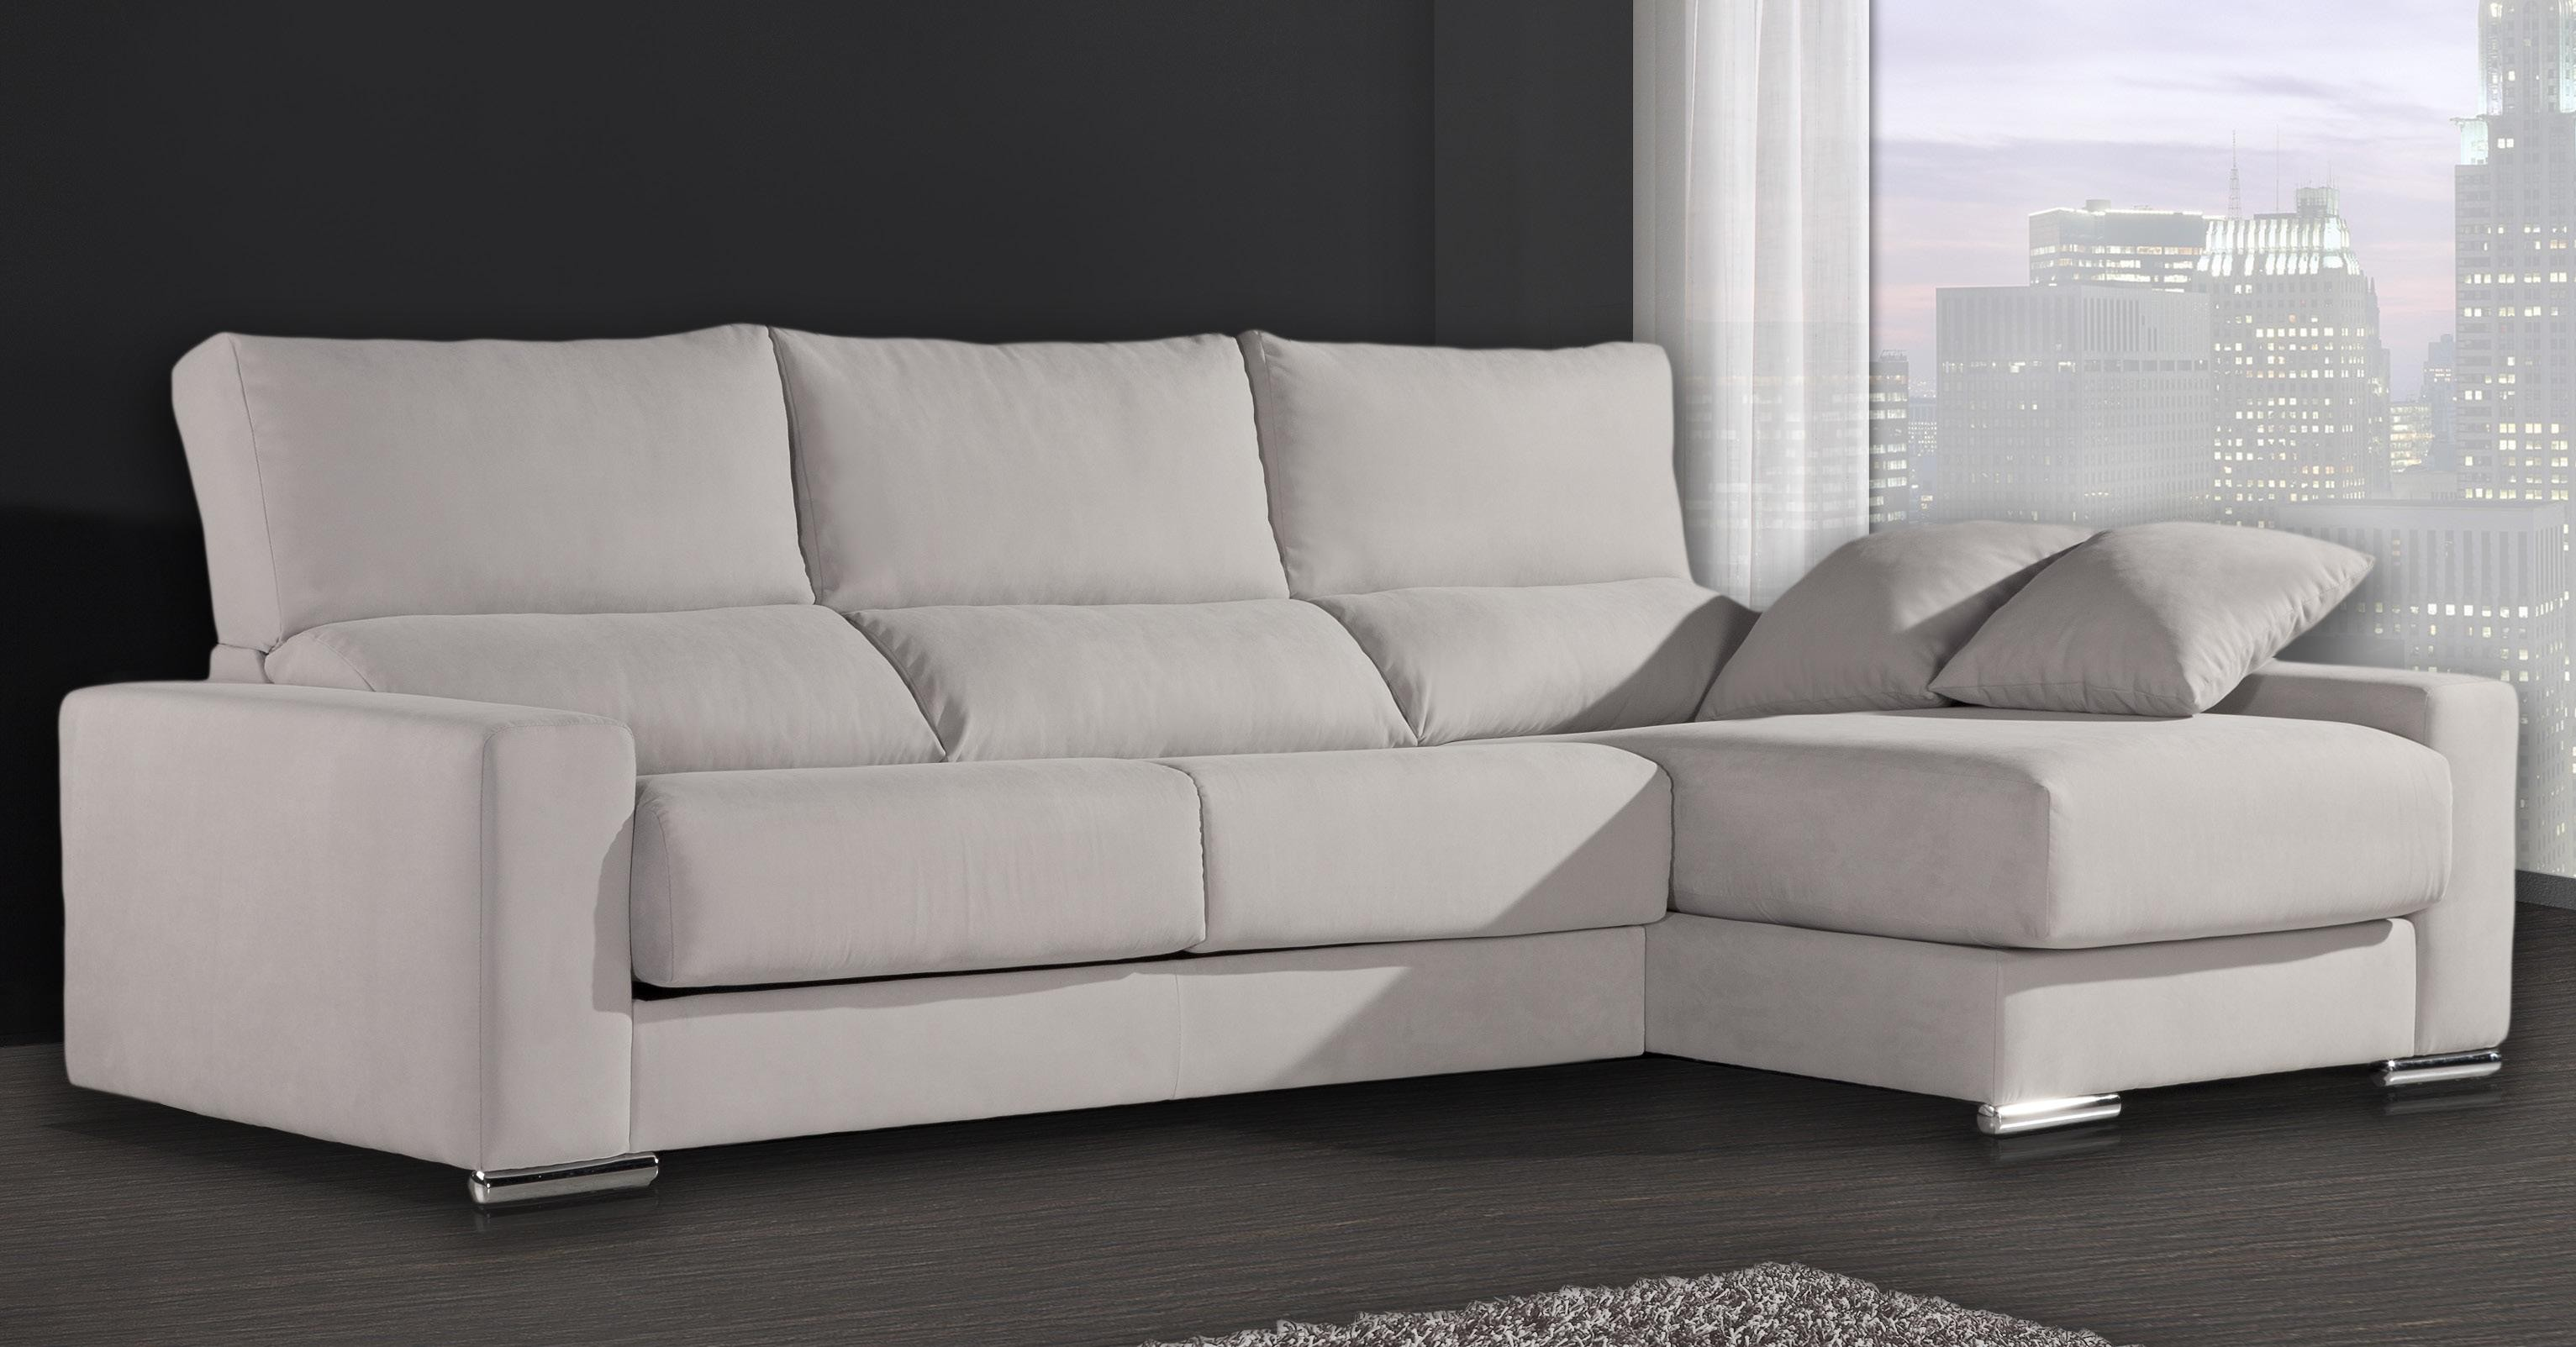 Sofas y chaise longue baratos for Sofas cama chaise longue